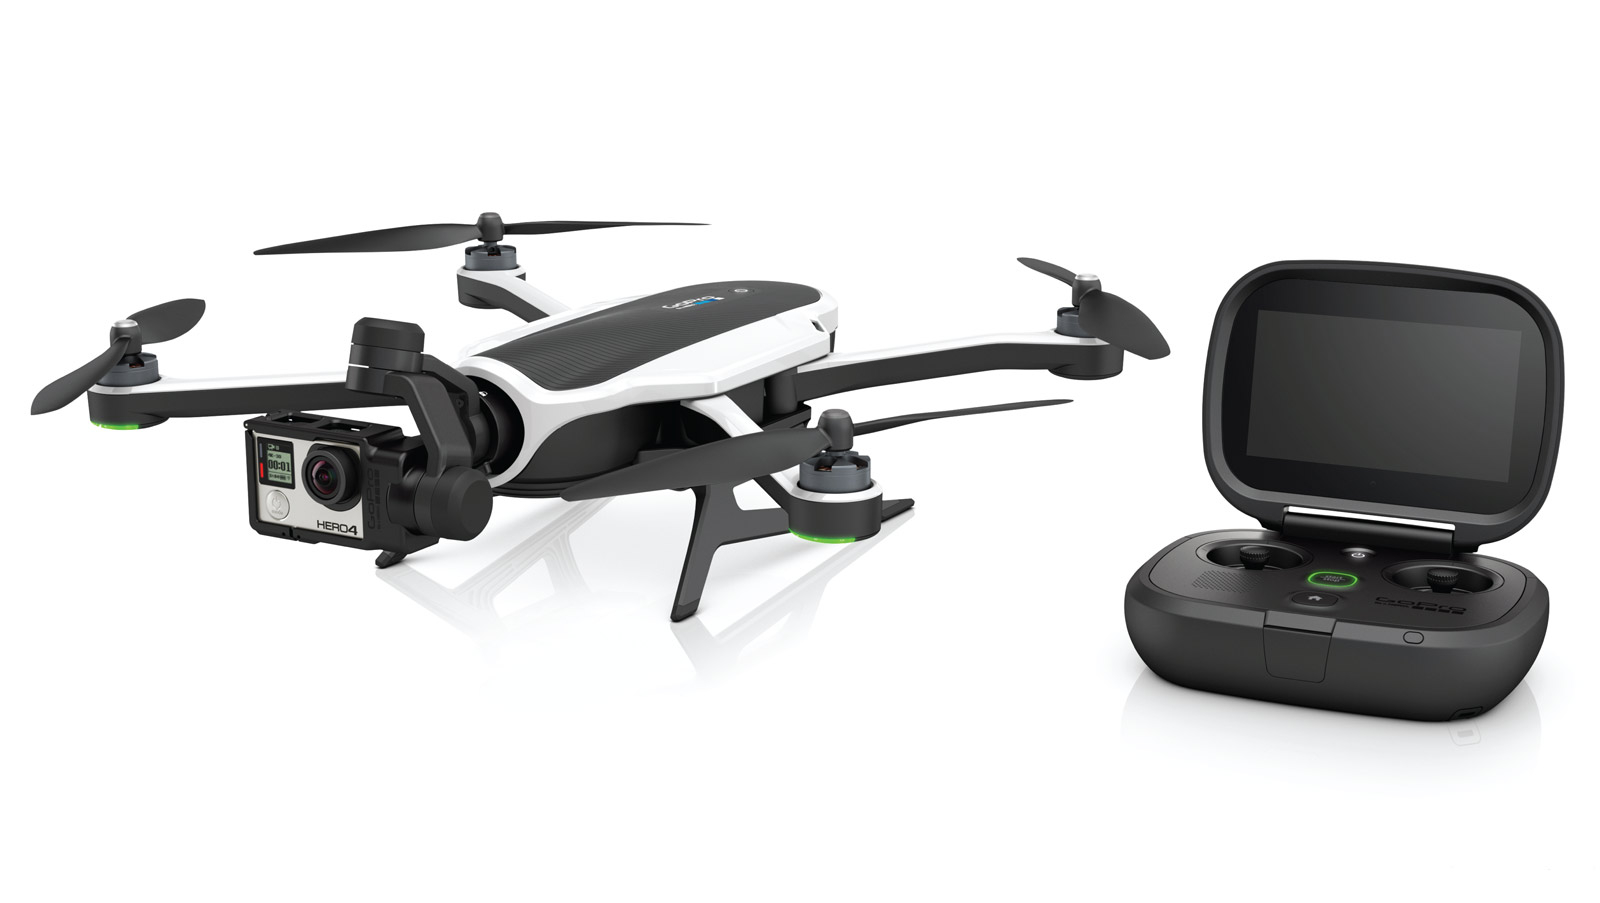 drones for sale in india with Gopro Karma Drone Announced  Pete Dji Phantom 1582178 on Nerf Tactical Vest also Dji Phantom 3 Review Dronelife in addition Tesla Model 3 Wallpaper likewise Obama Administration To Allow Allied Countries To Buy Military Drones additionally Six New E merce Trends Shaping The Future Online Retail.